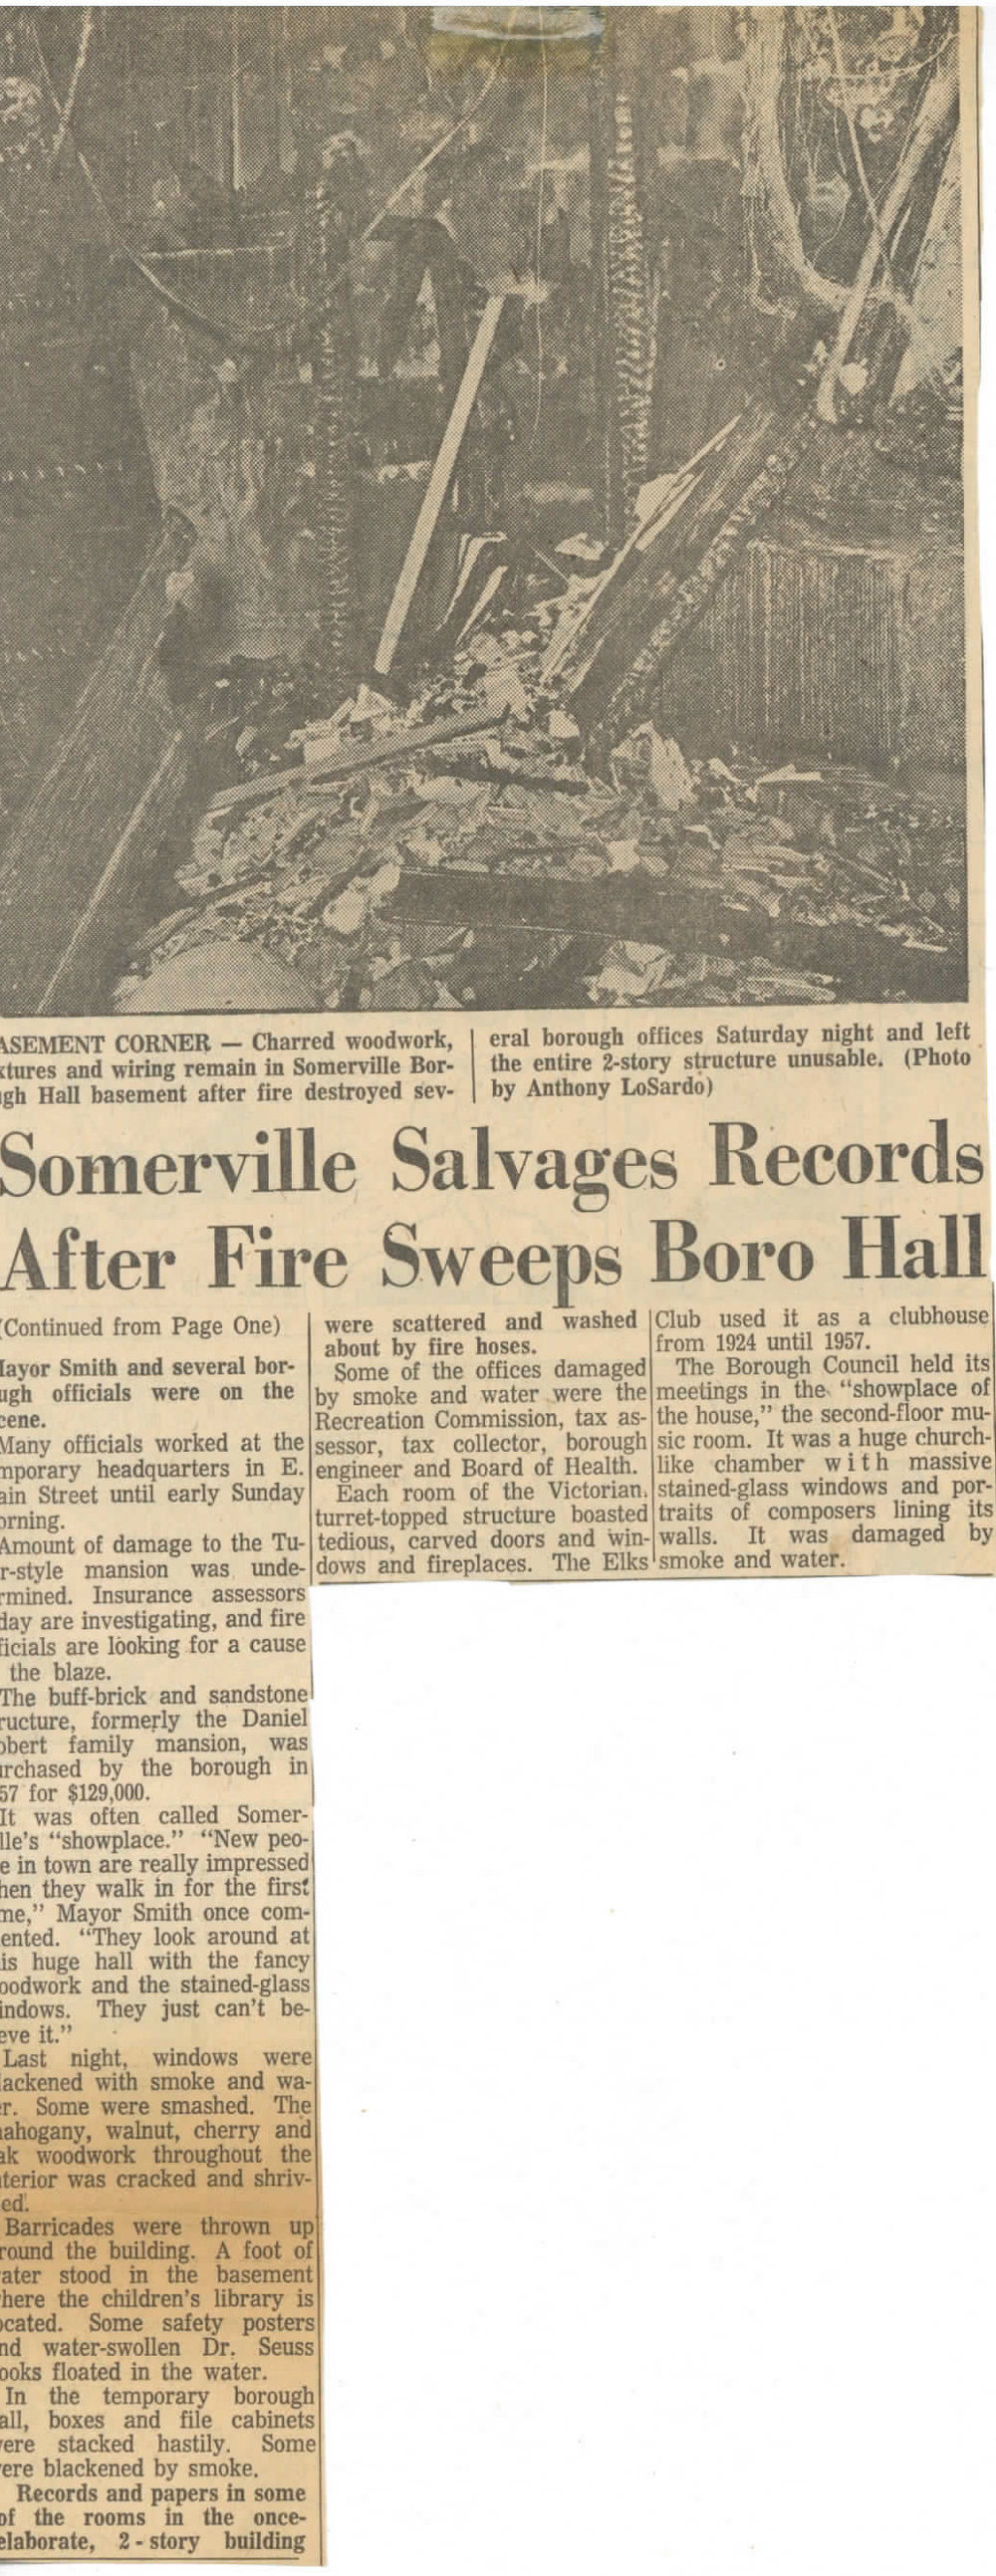 1967 Boro hall fire.article.4_Page_1_Image_0001.jpg